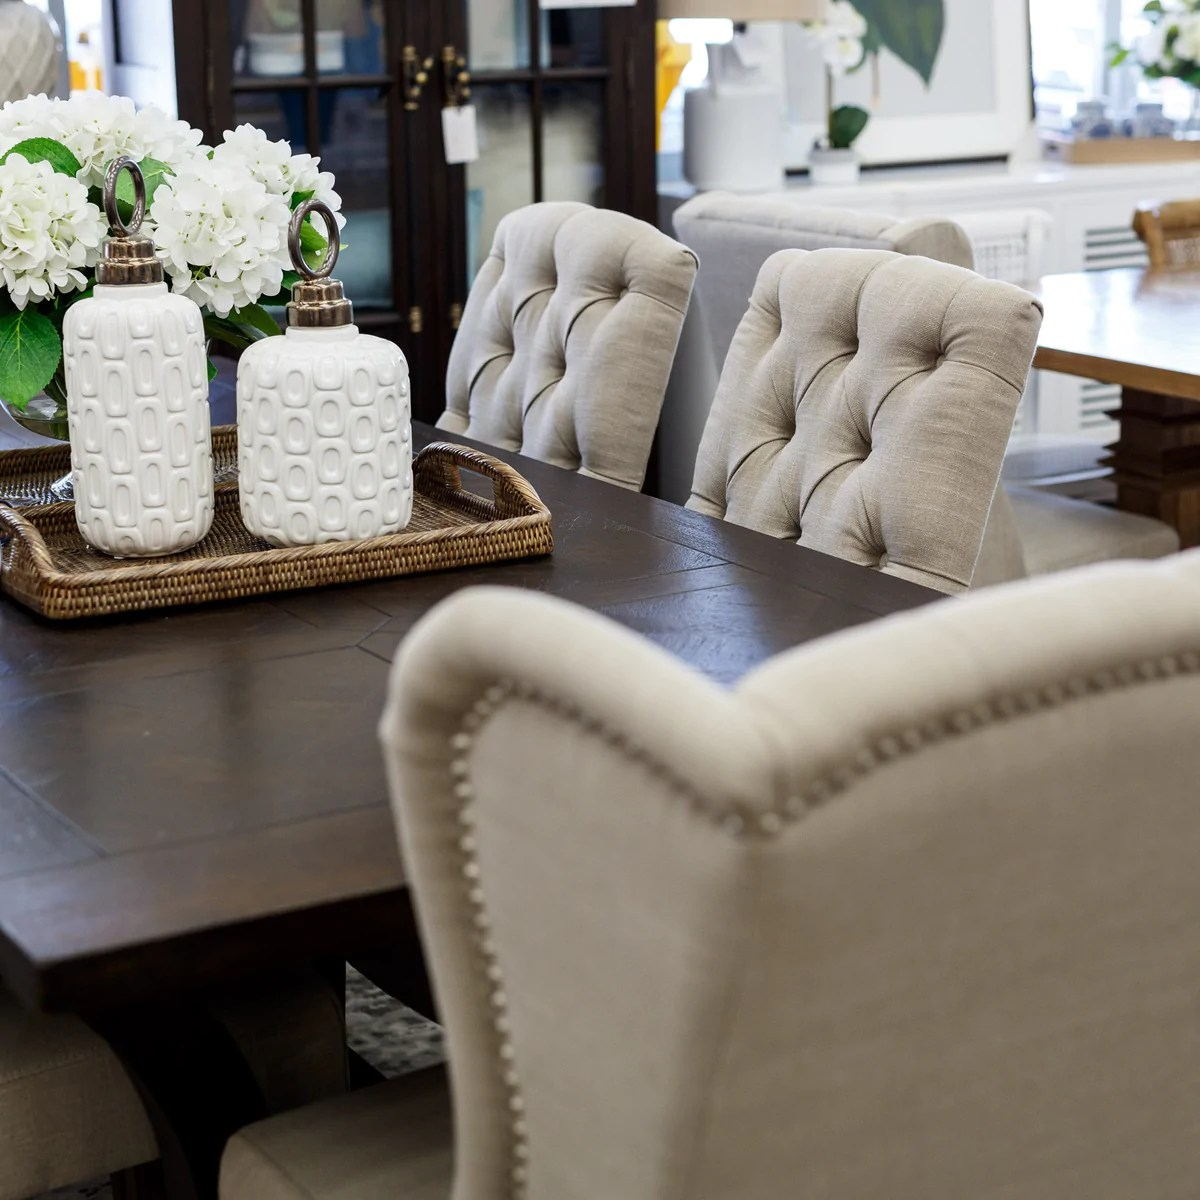 Furniture Stores Osborne Park Wa Hudson Dining Chair Hamptons Style Furniture Perth